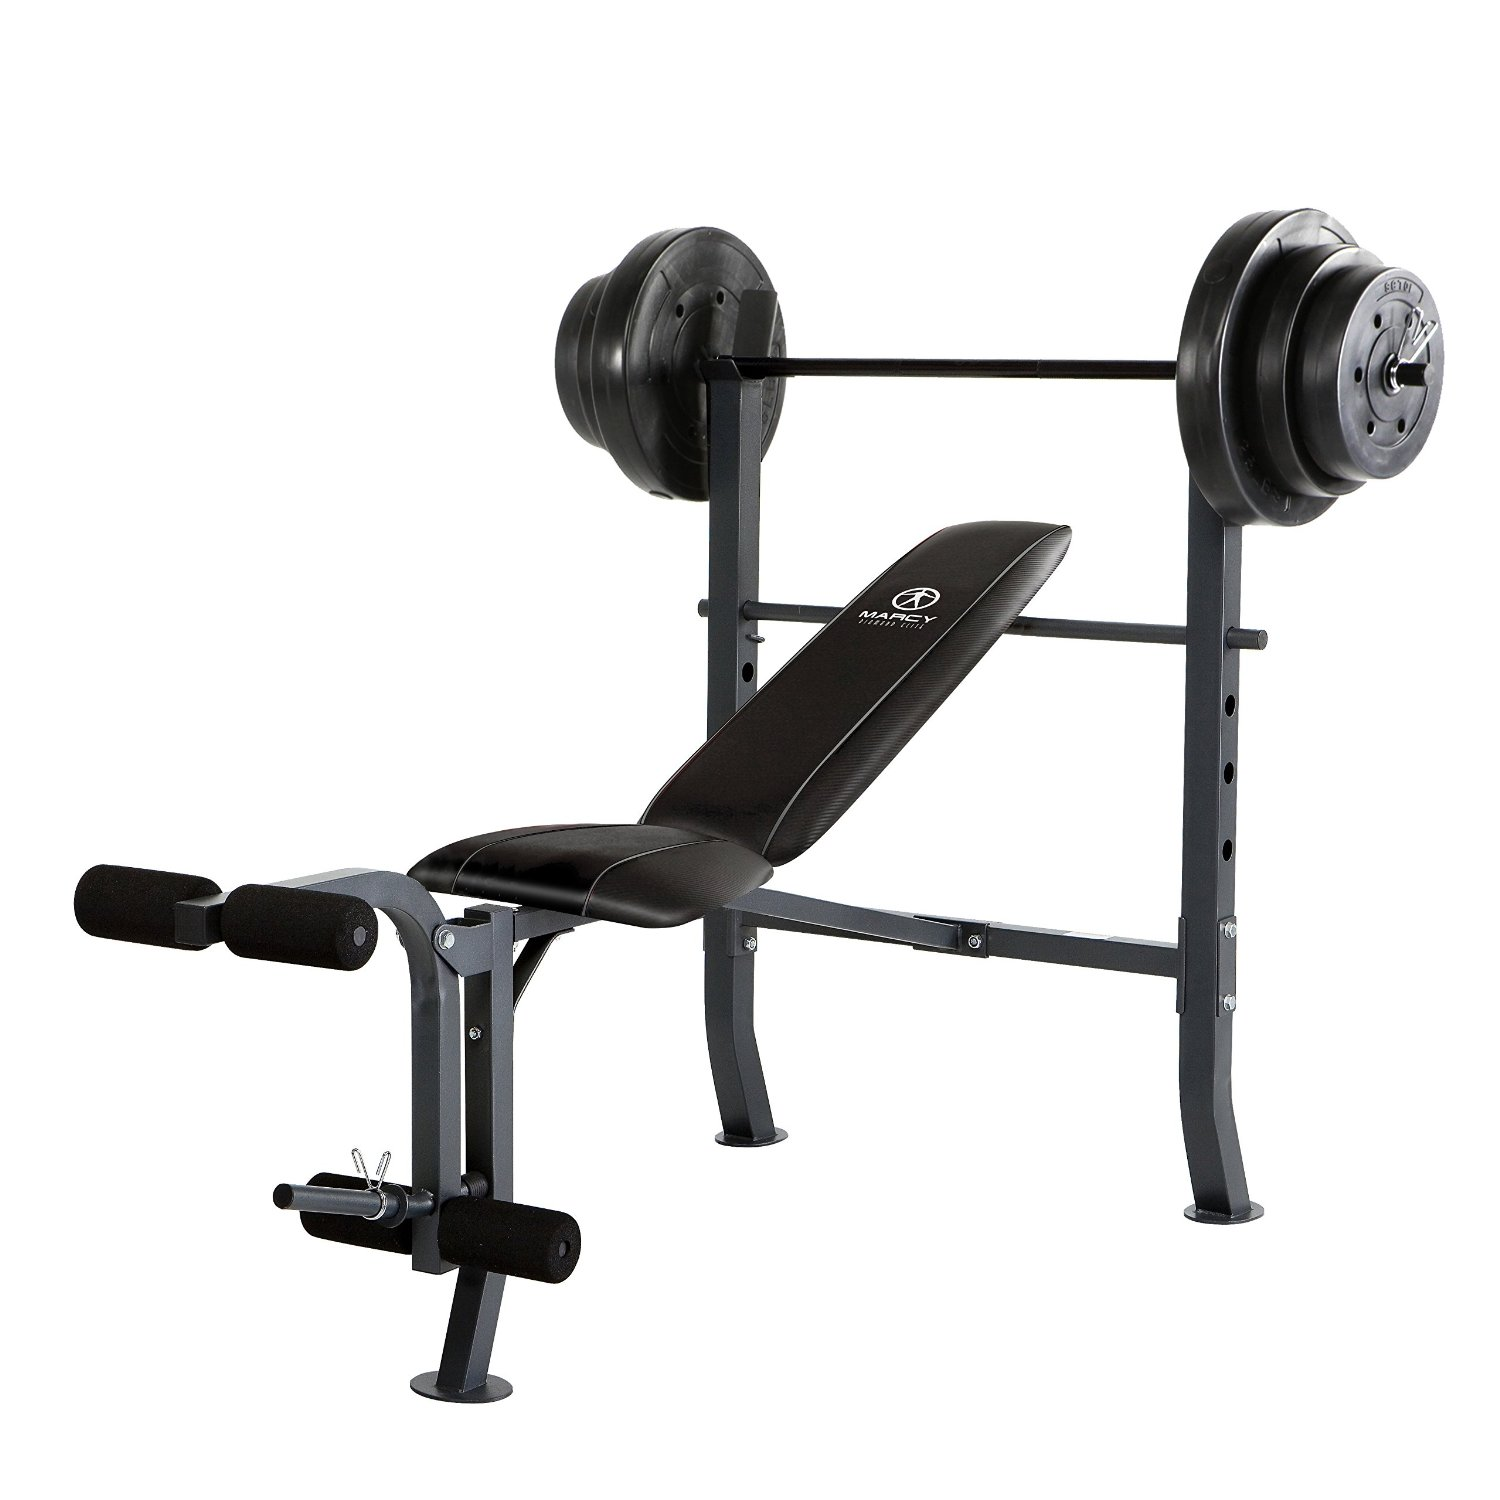 Marcy Standard Bench w/ 100 lb Weight Set Home Gym Workout Equipment | MD2082W